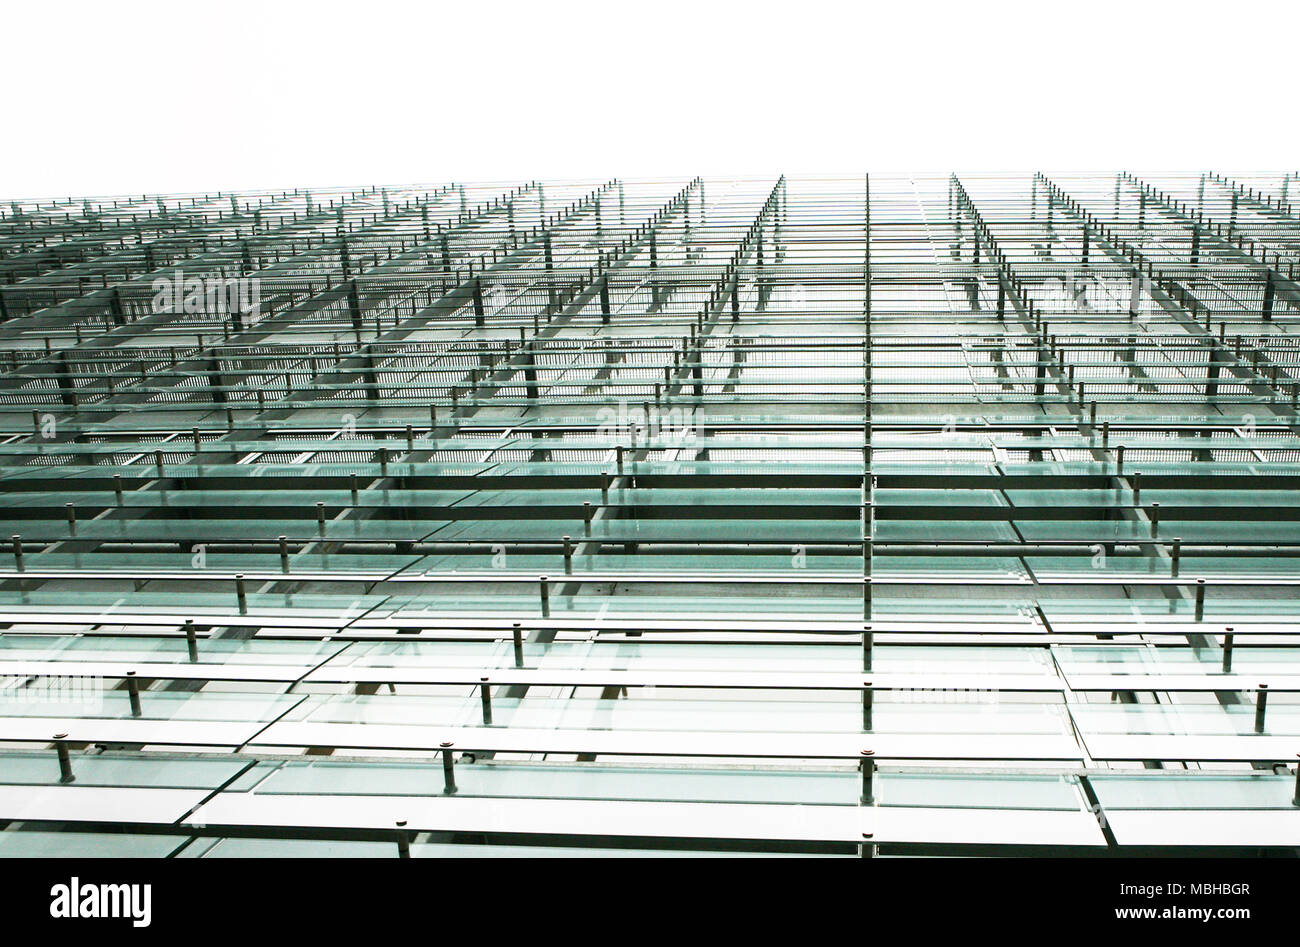 Glass and steel building facade - Stock Image